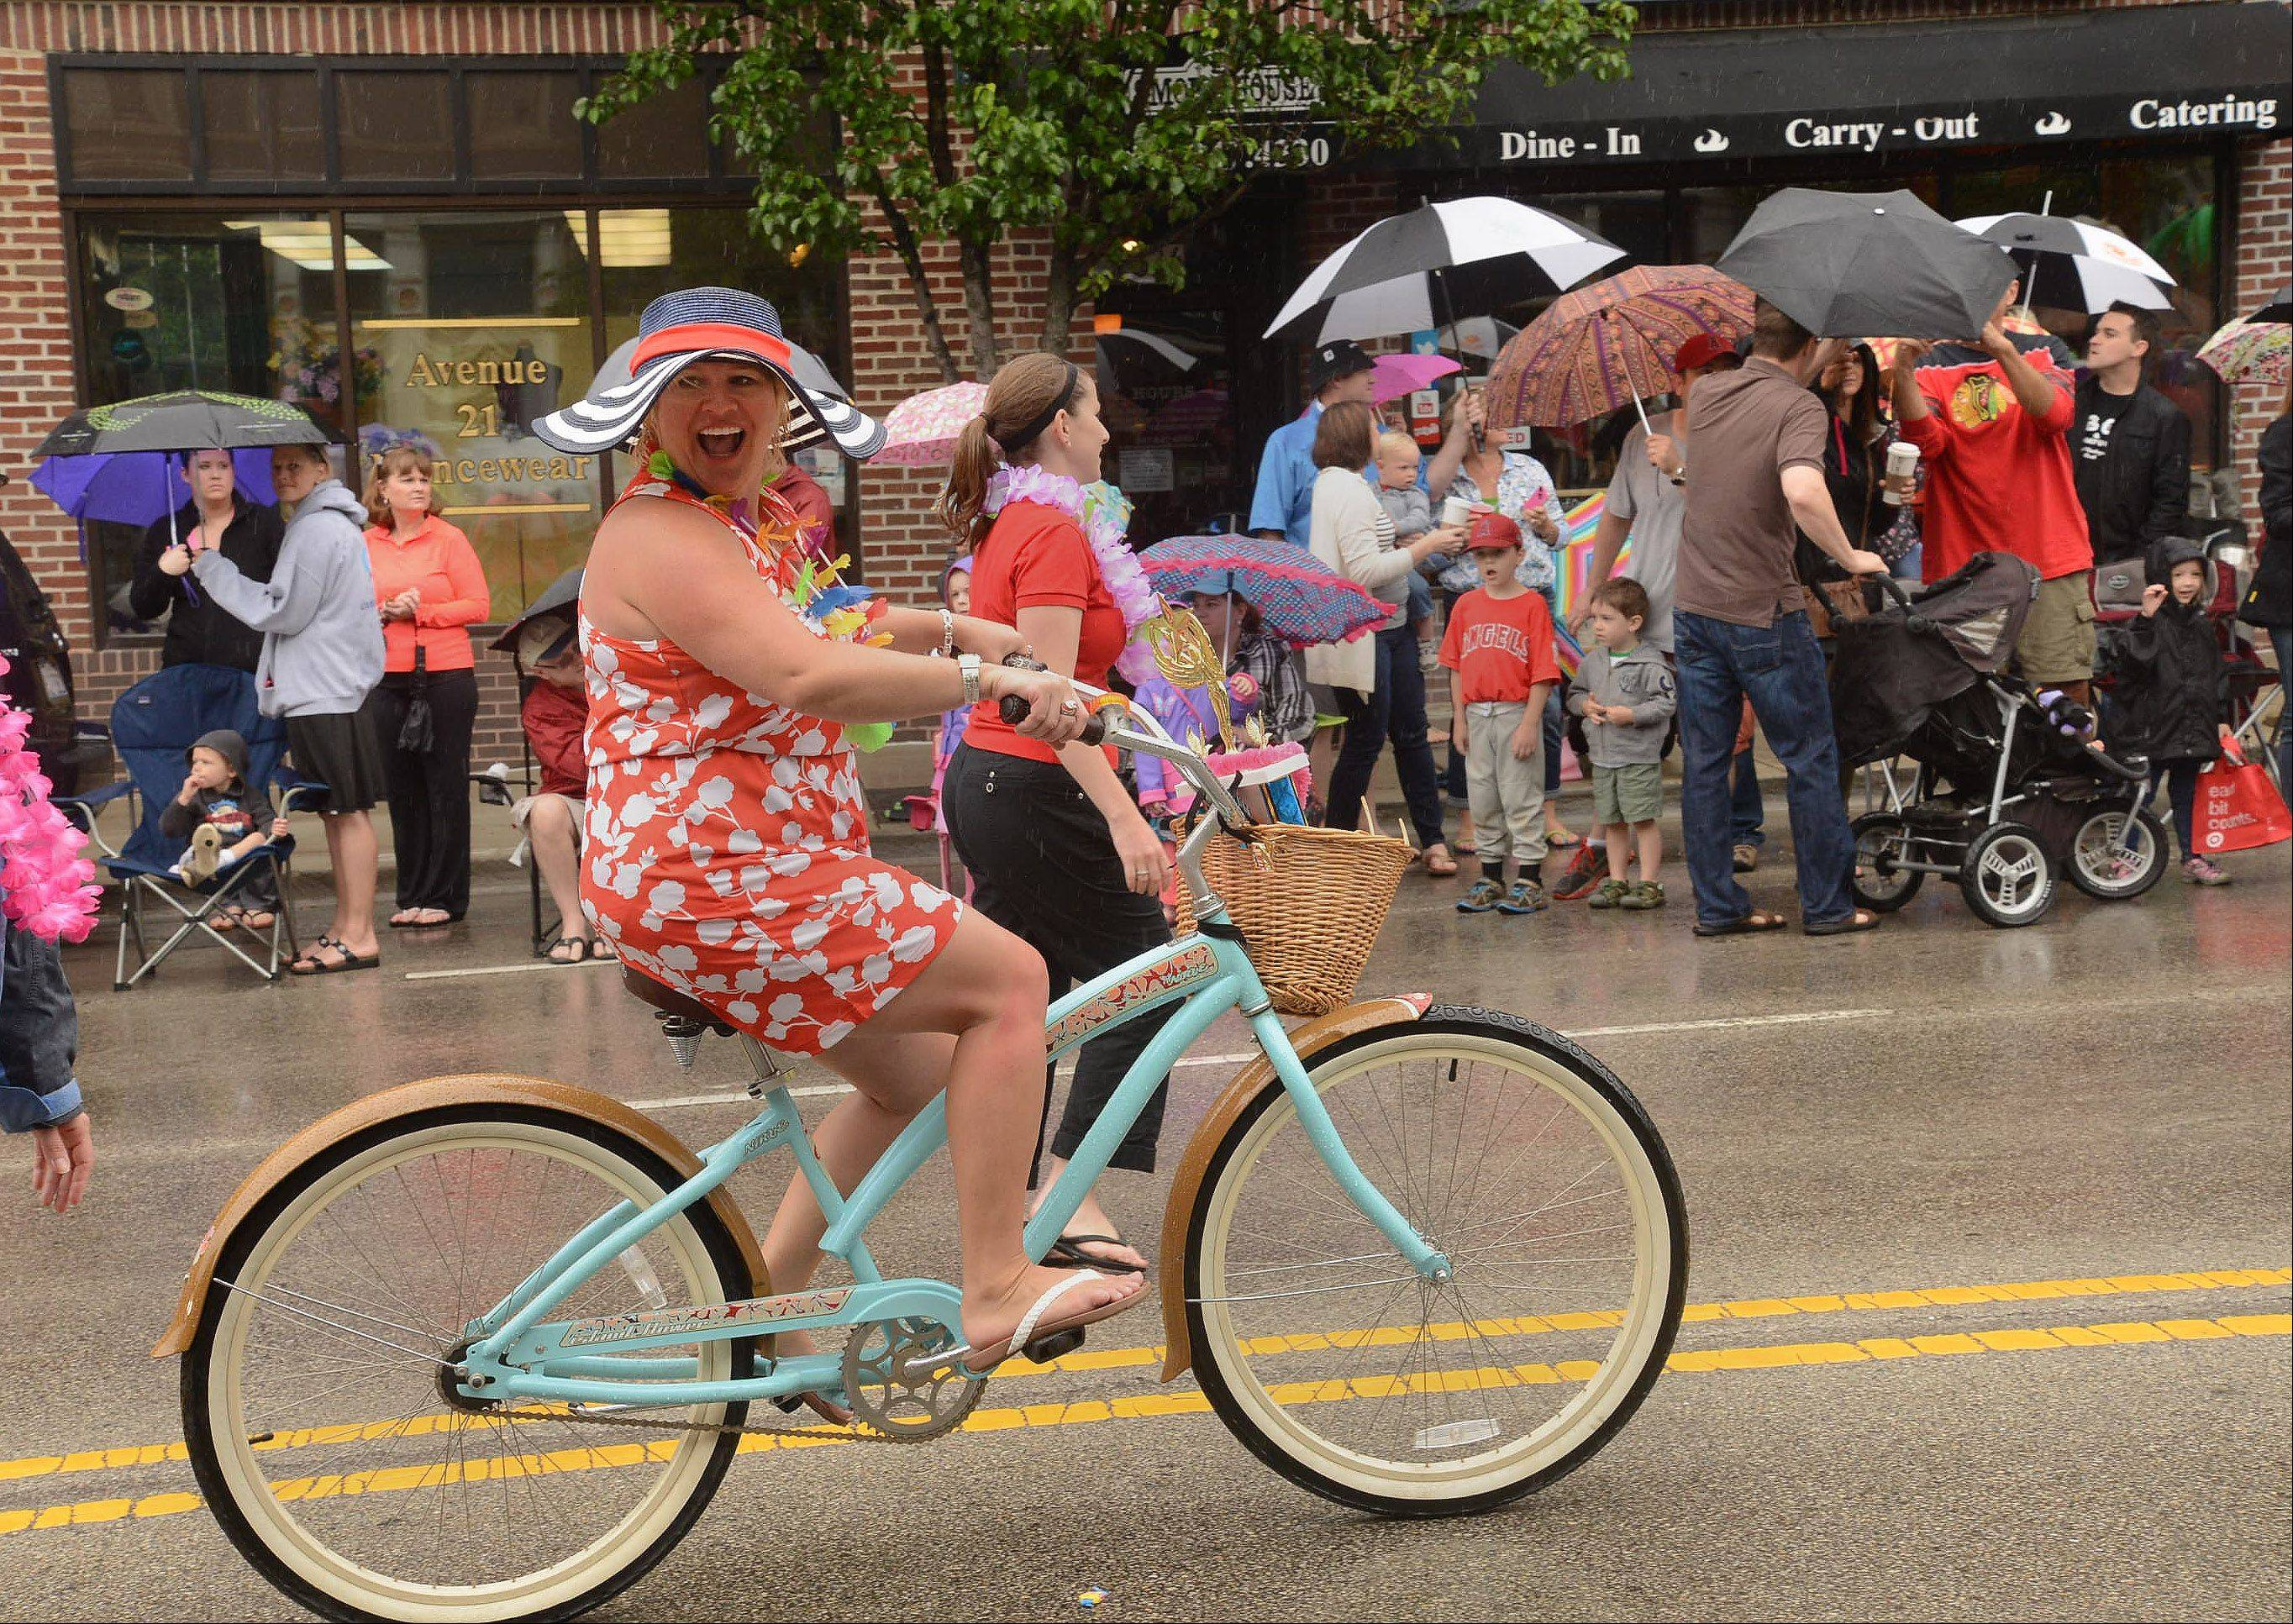 Some wore hats, but umbrella's seemed to be the protection of choice against the rain during Saturday's Libertyville Days Parade.